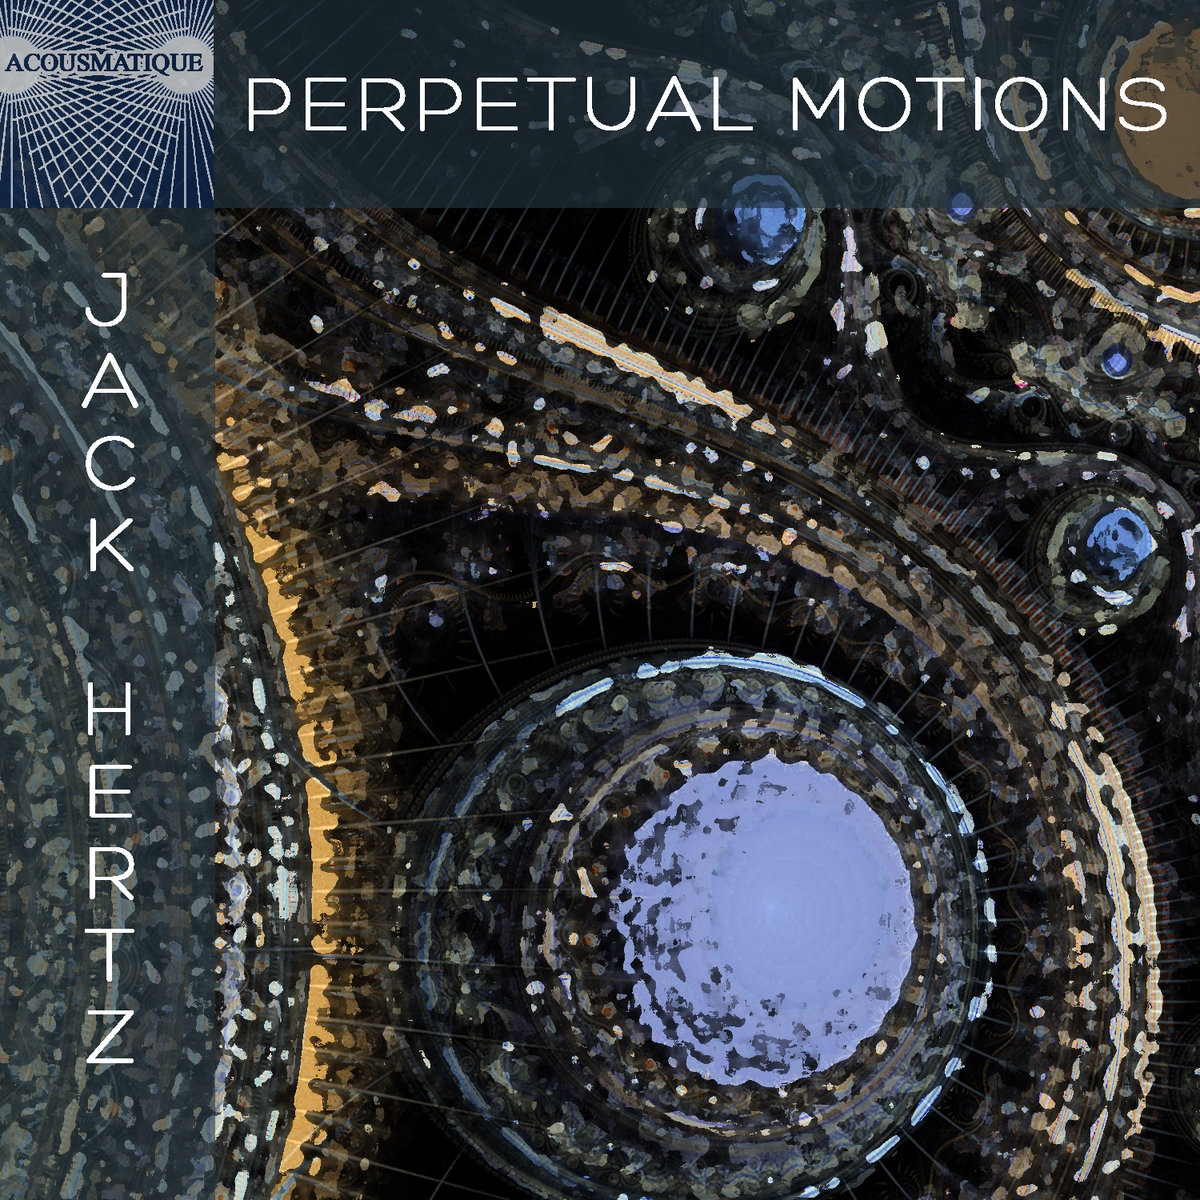 Perpetual Motions by Jack Hertz